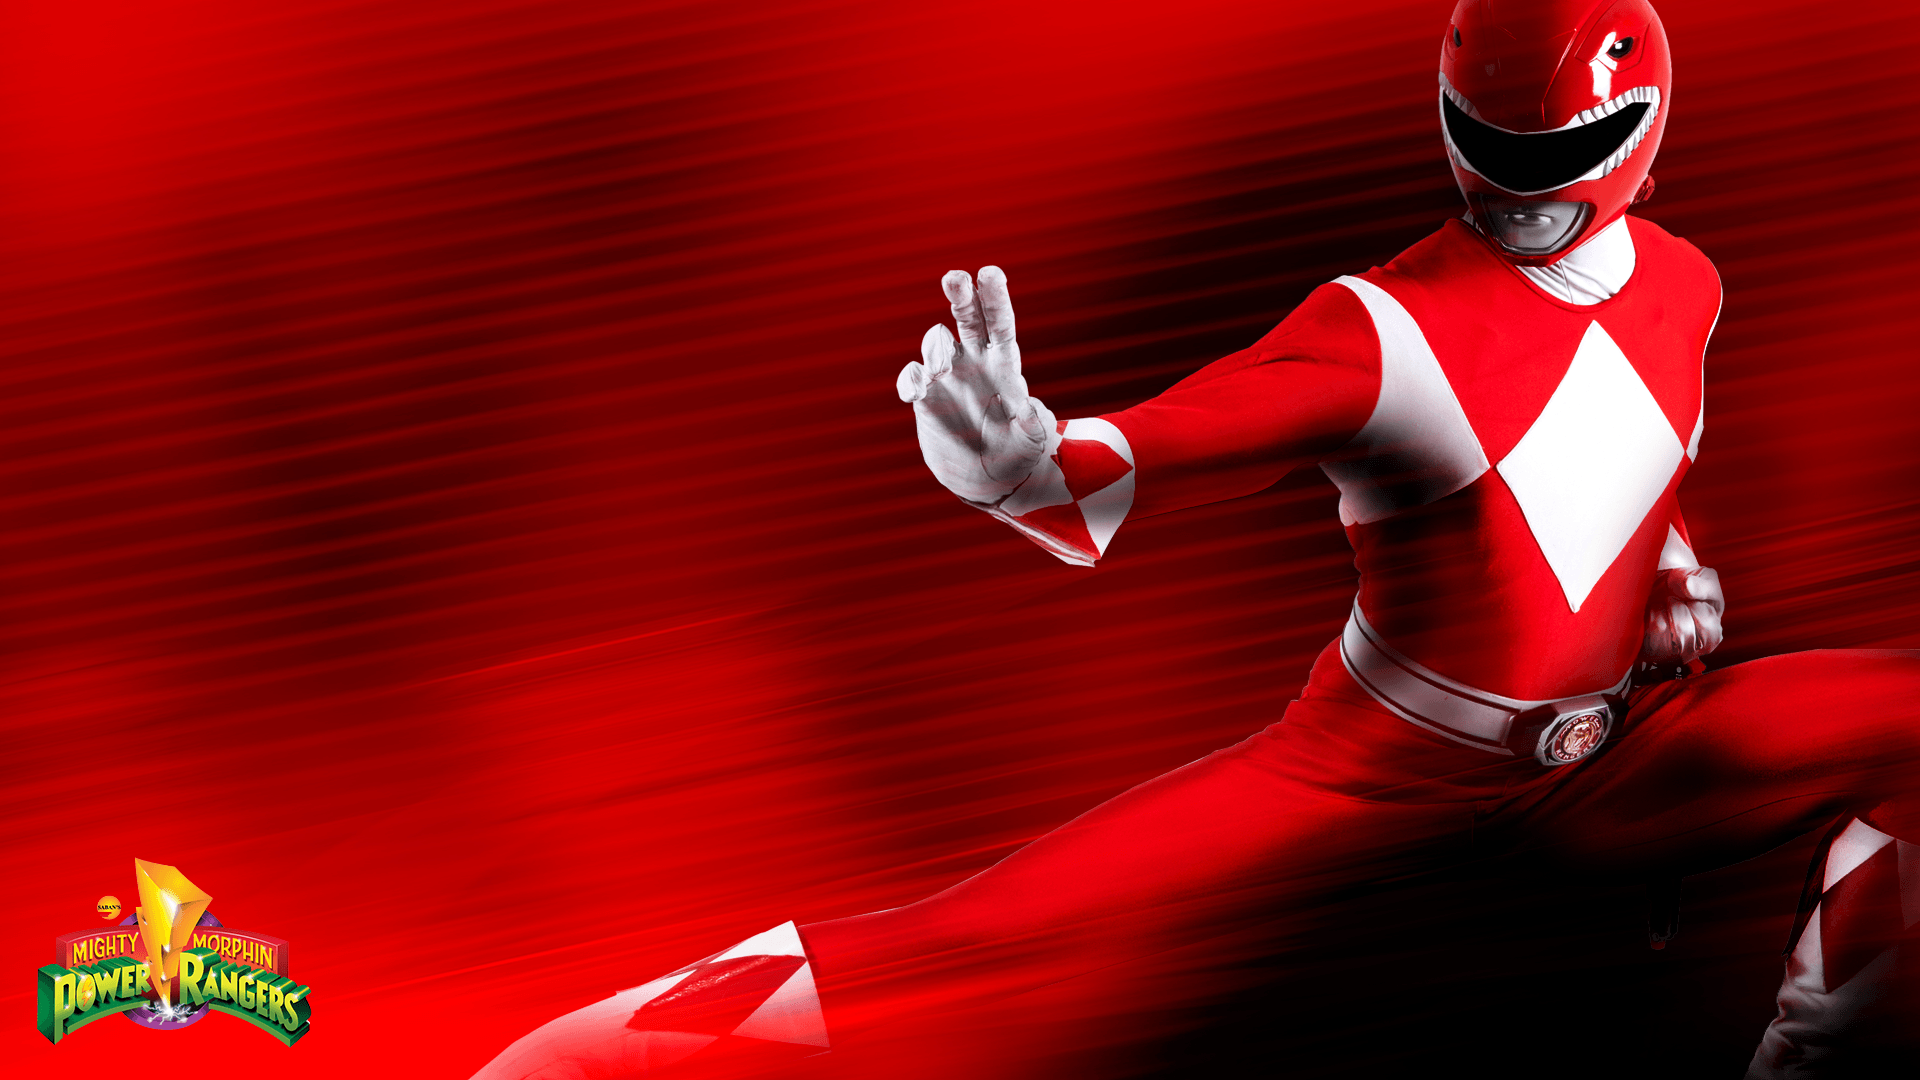 200 power ranger wallpaper - photo #4